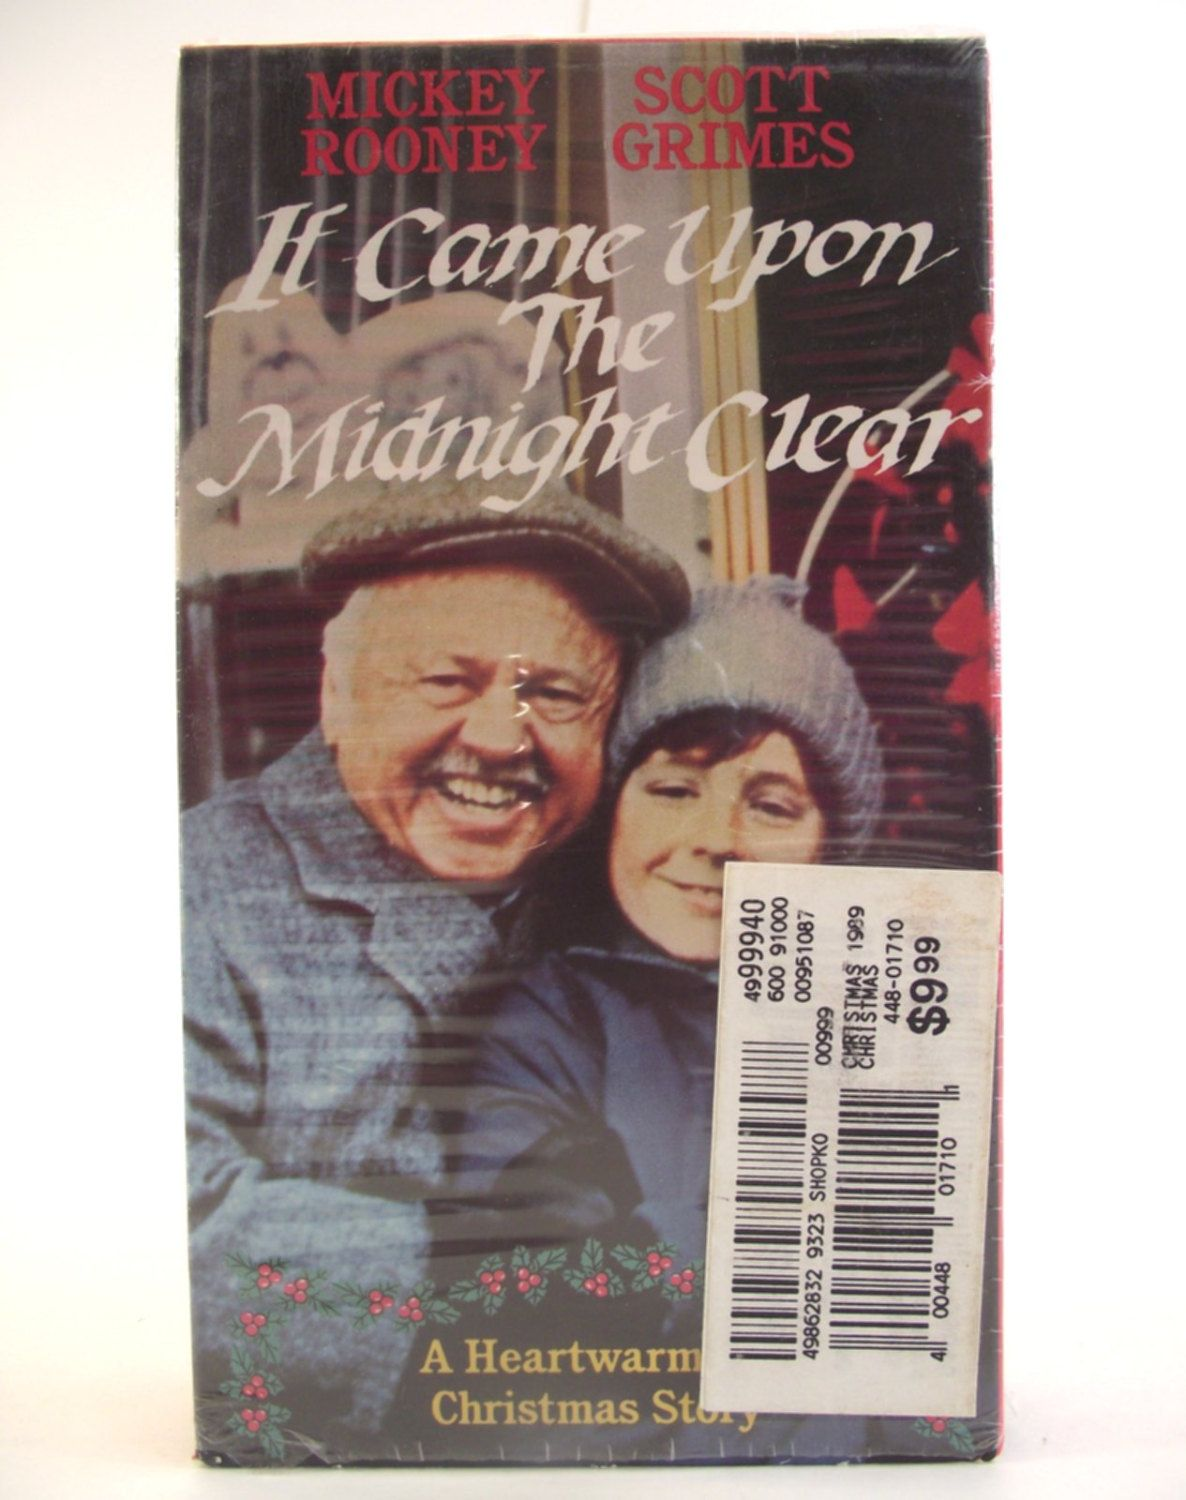 1988 VHS It Came Upon A Midnight Clear Christmas Movie Film Video ...